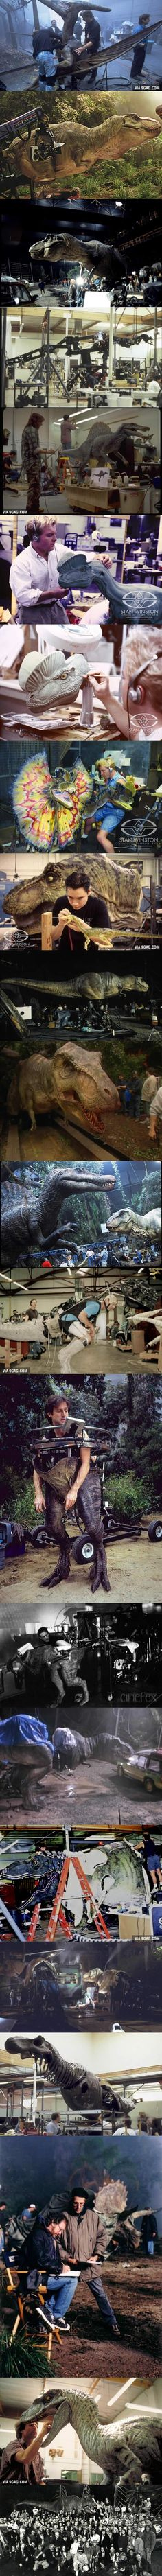 This Is Why The Original Jurassic Park Didn't Suck